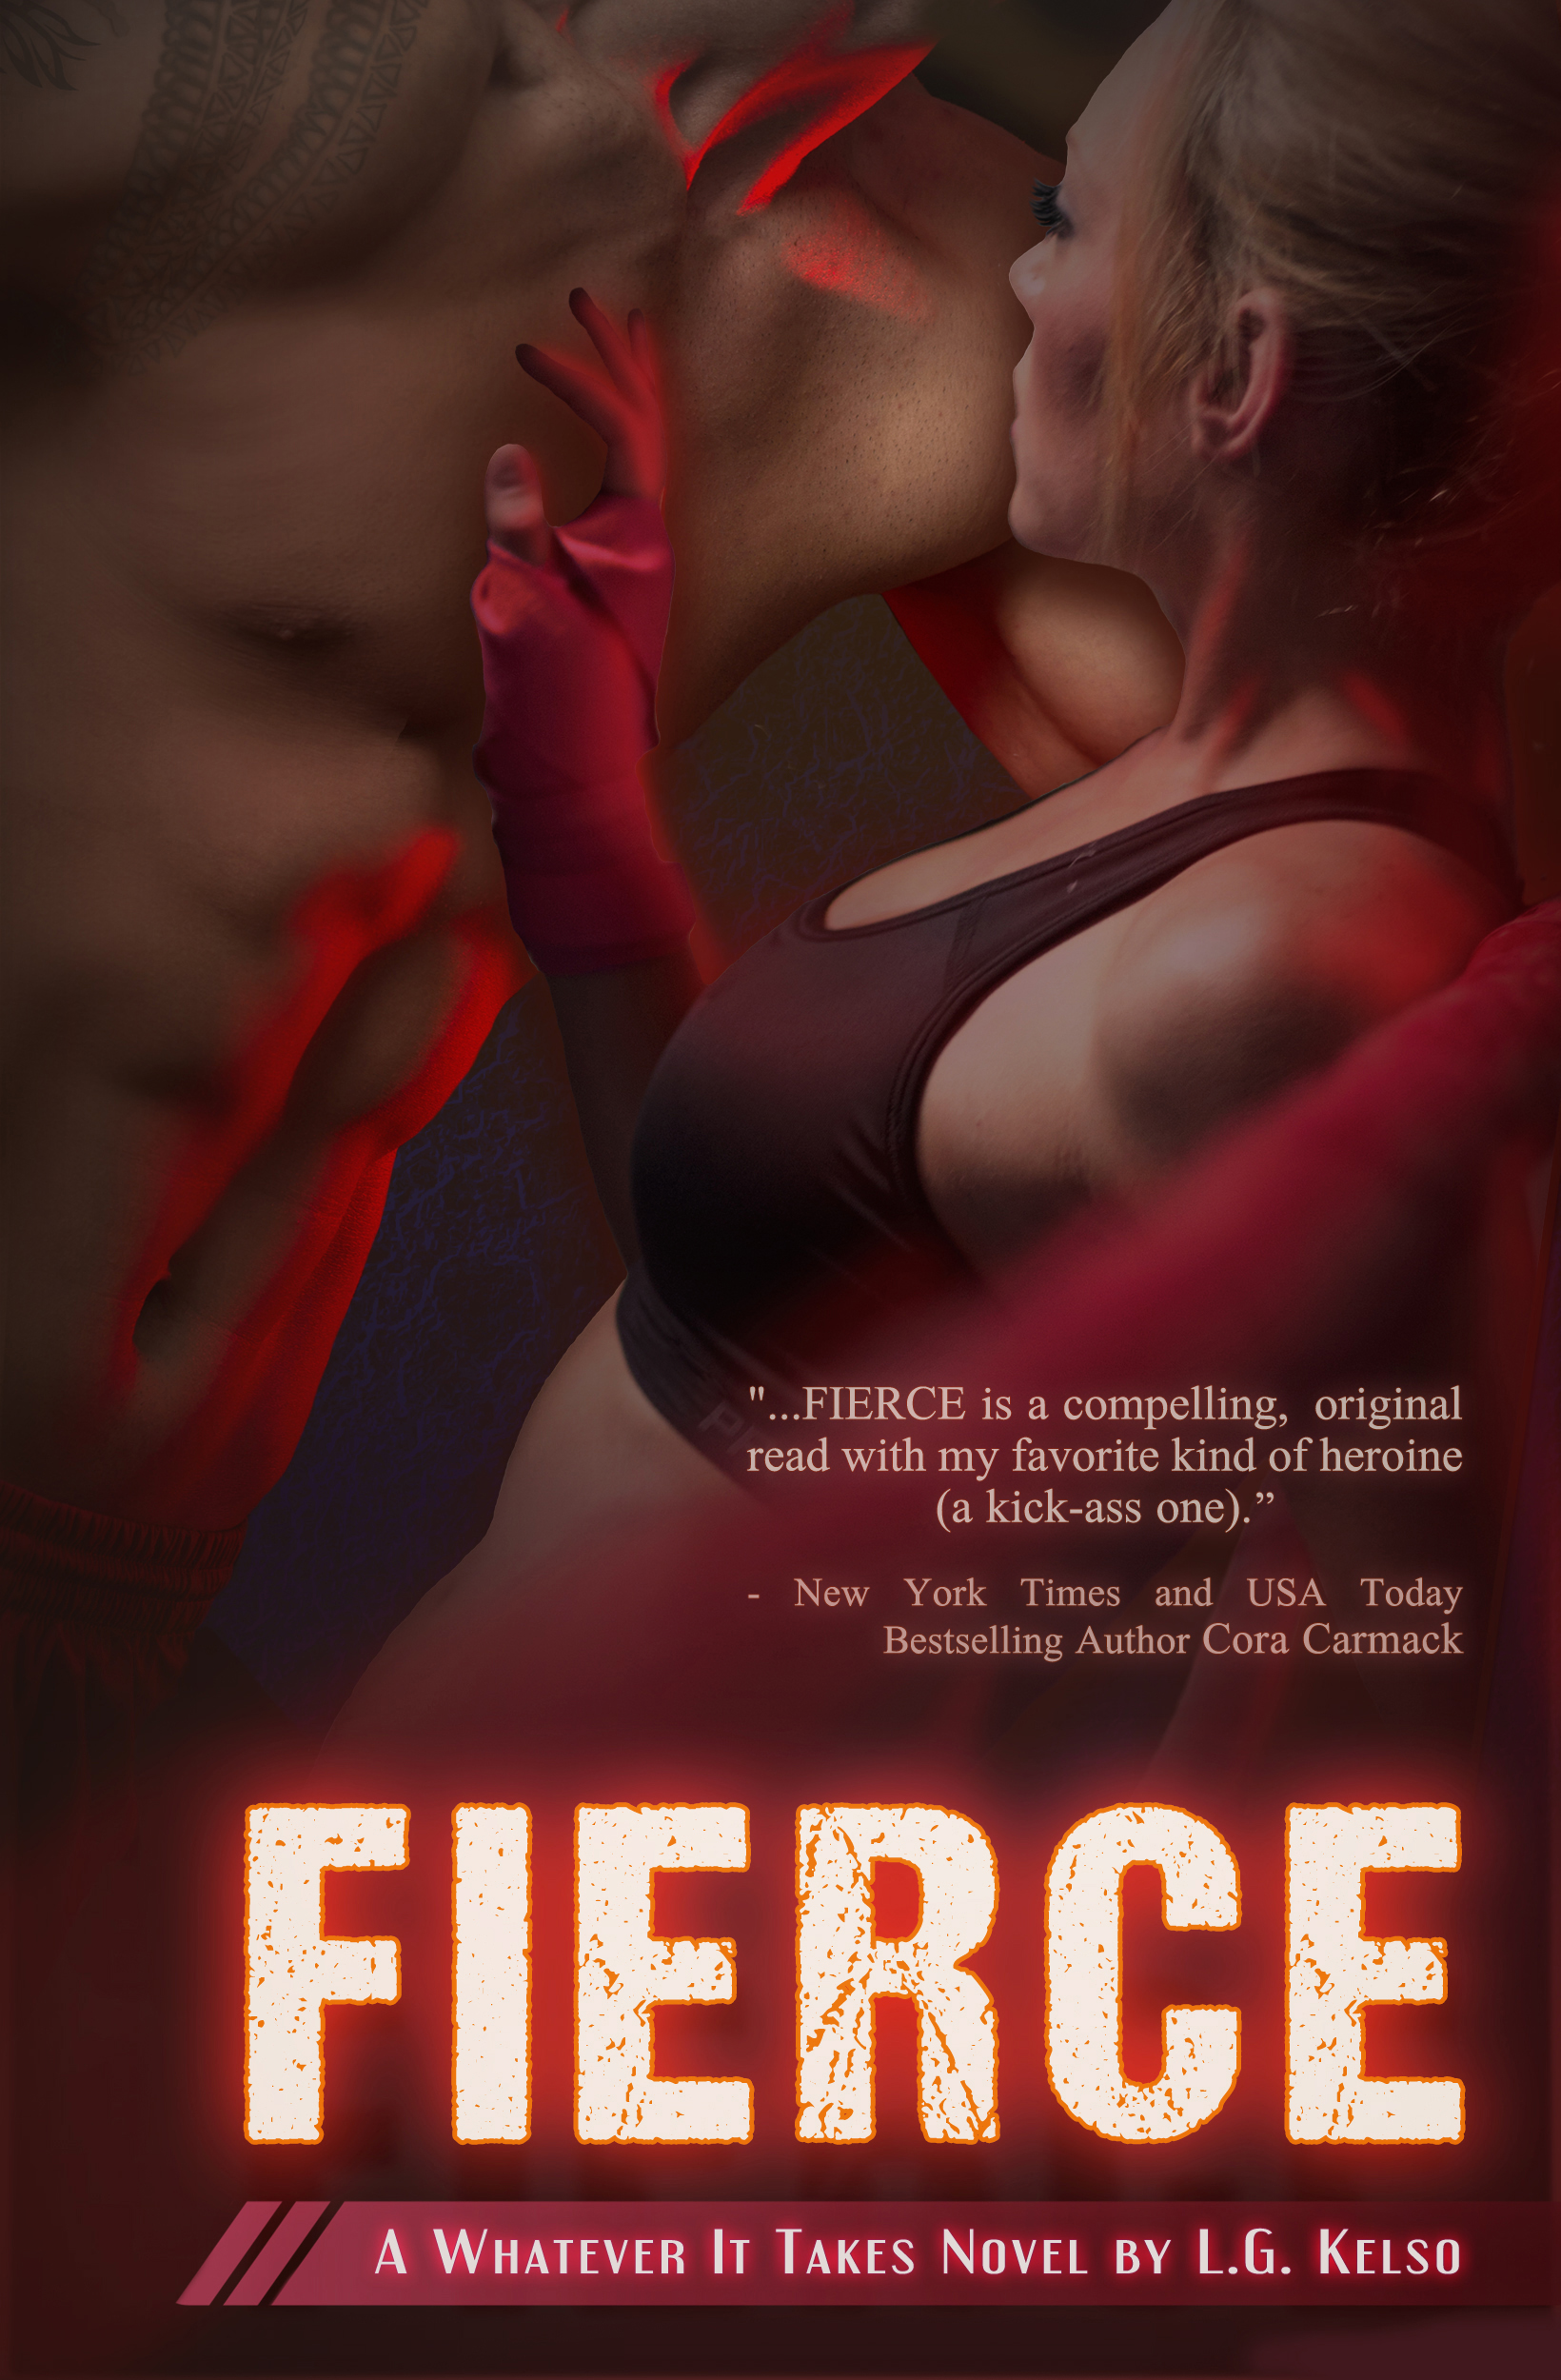 FIERCE_Ebook_Blurb